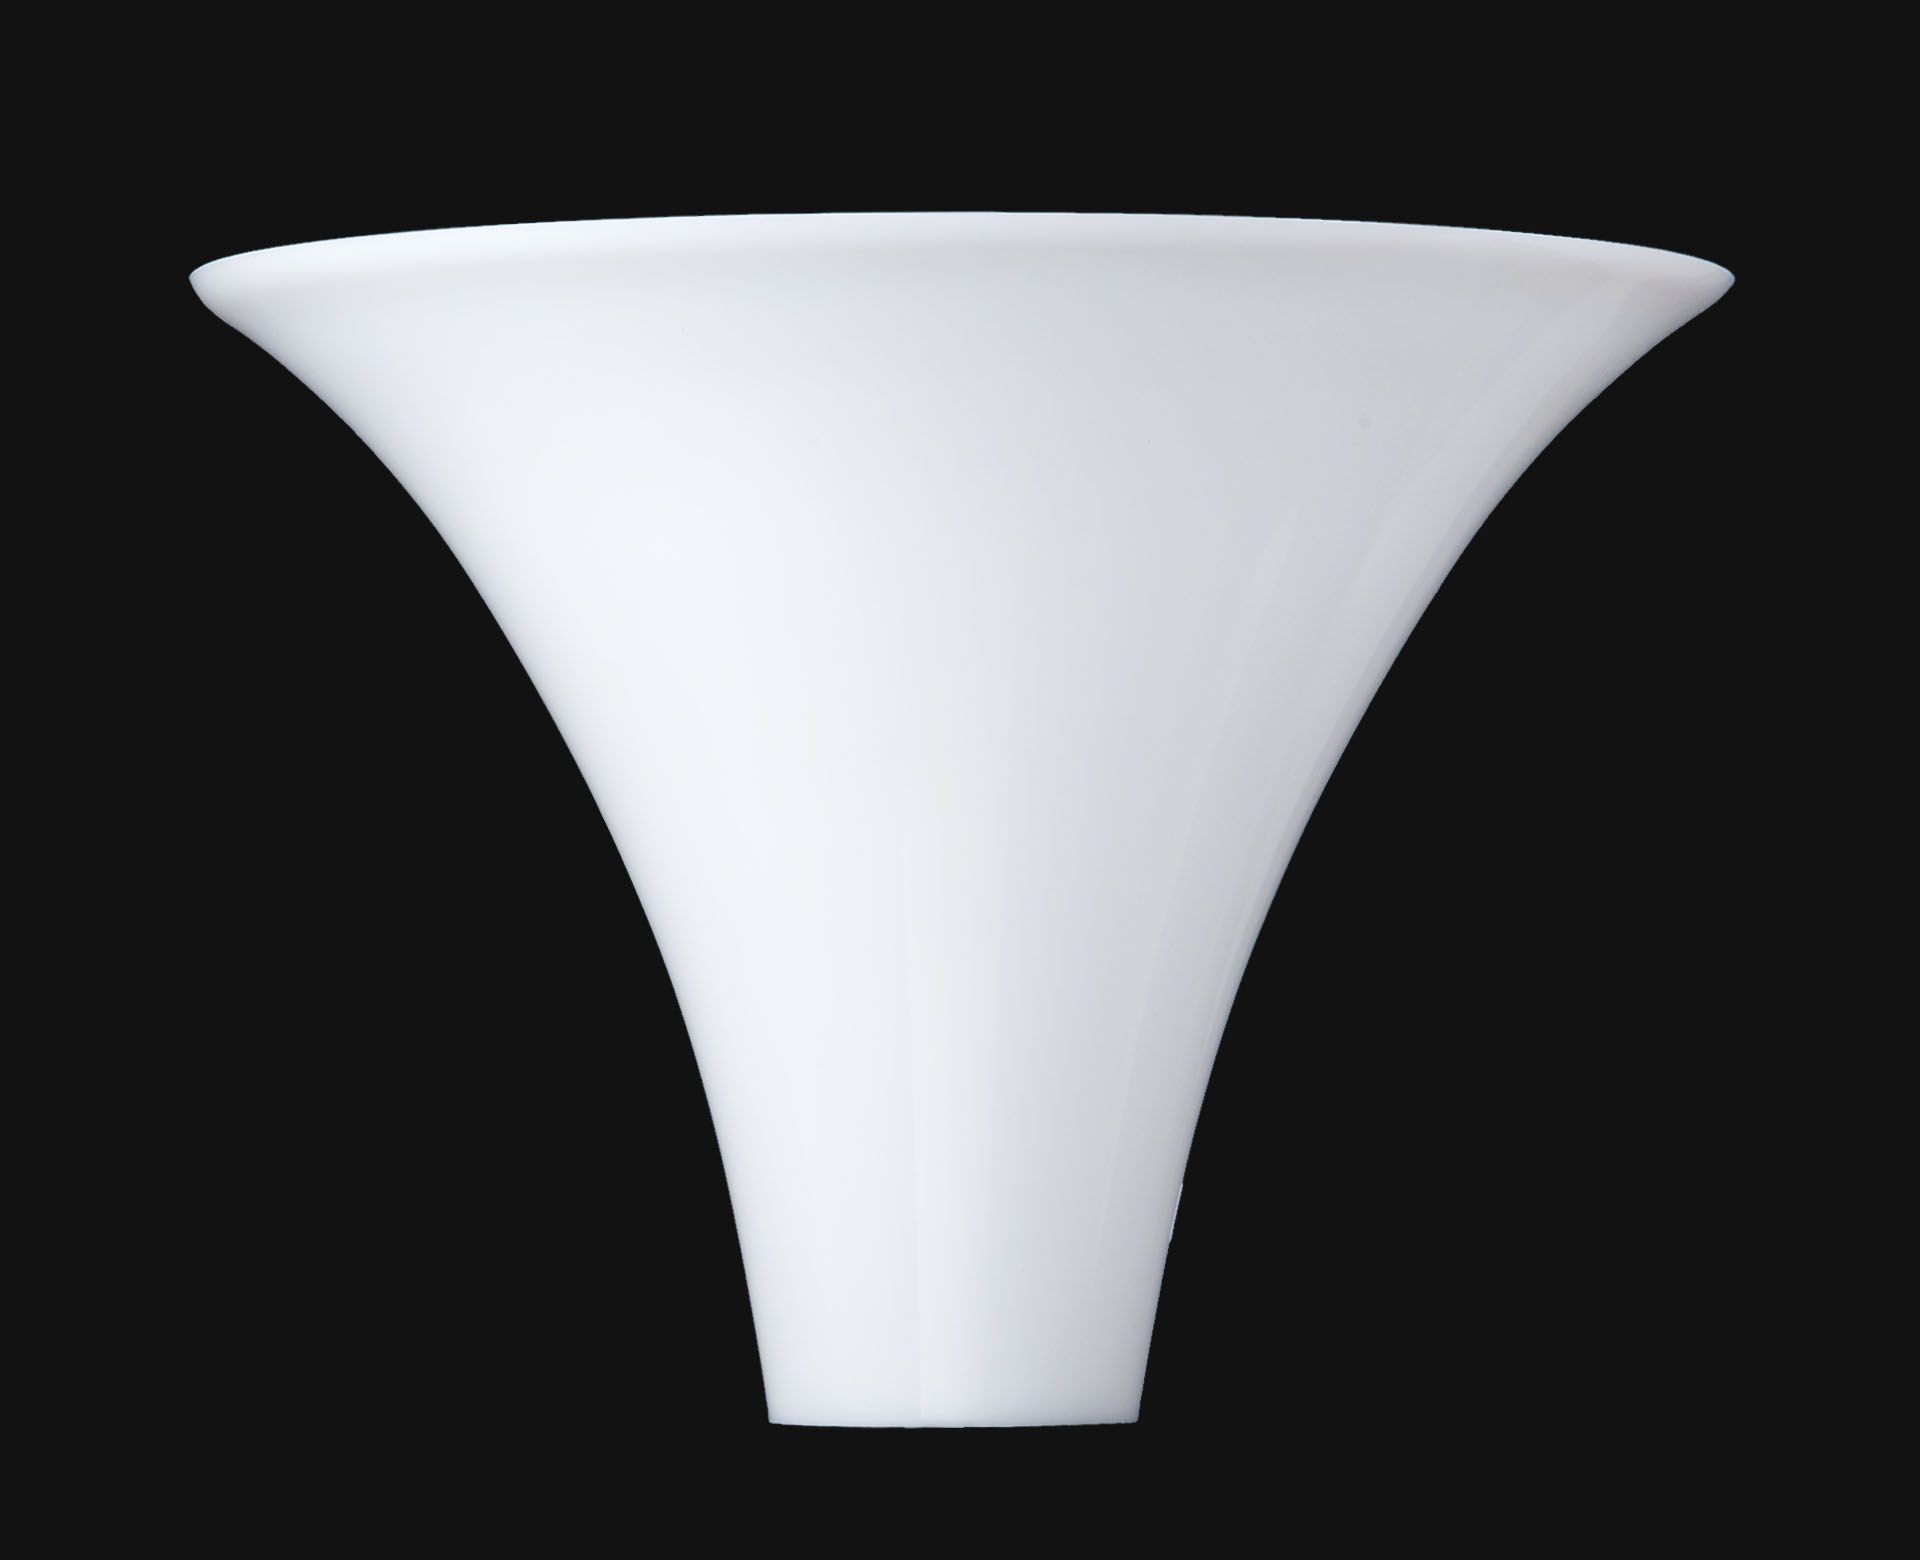 10 opal glass torchiere lamp shade 09087 bp lamp supply for Plastic torchiere floor lamp shade replacement